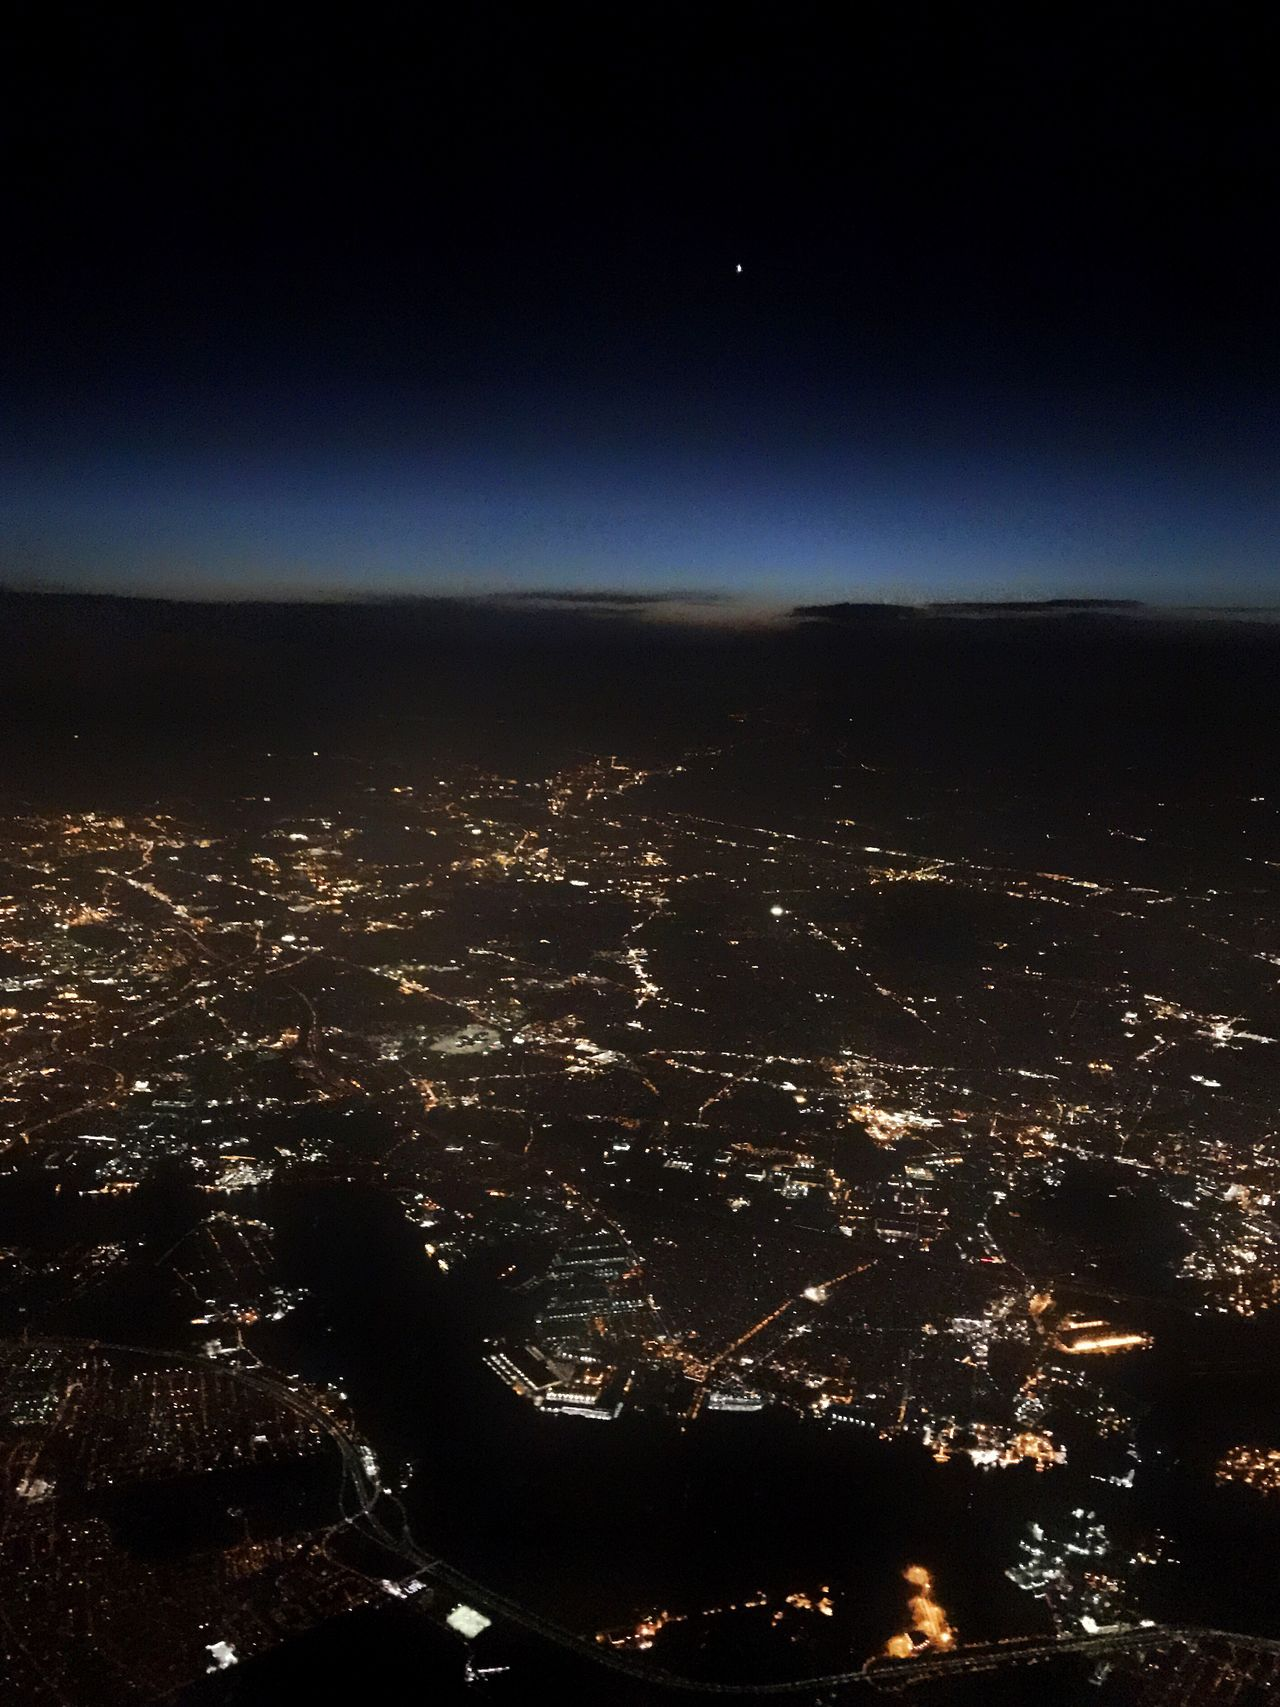 Cityscape at night from above. Night Aerial View Cityscape City Sky Scenics No People Illuminated Outdoors Astronomy Star Atmospheric Mood